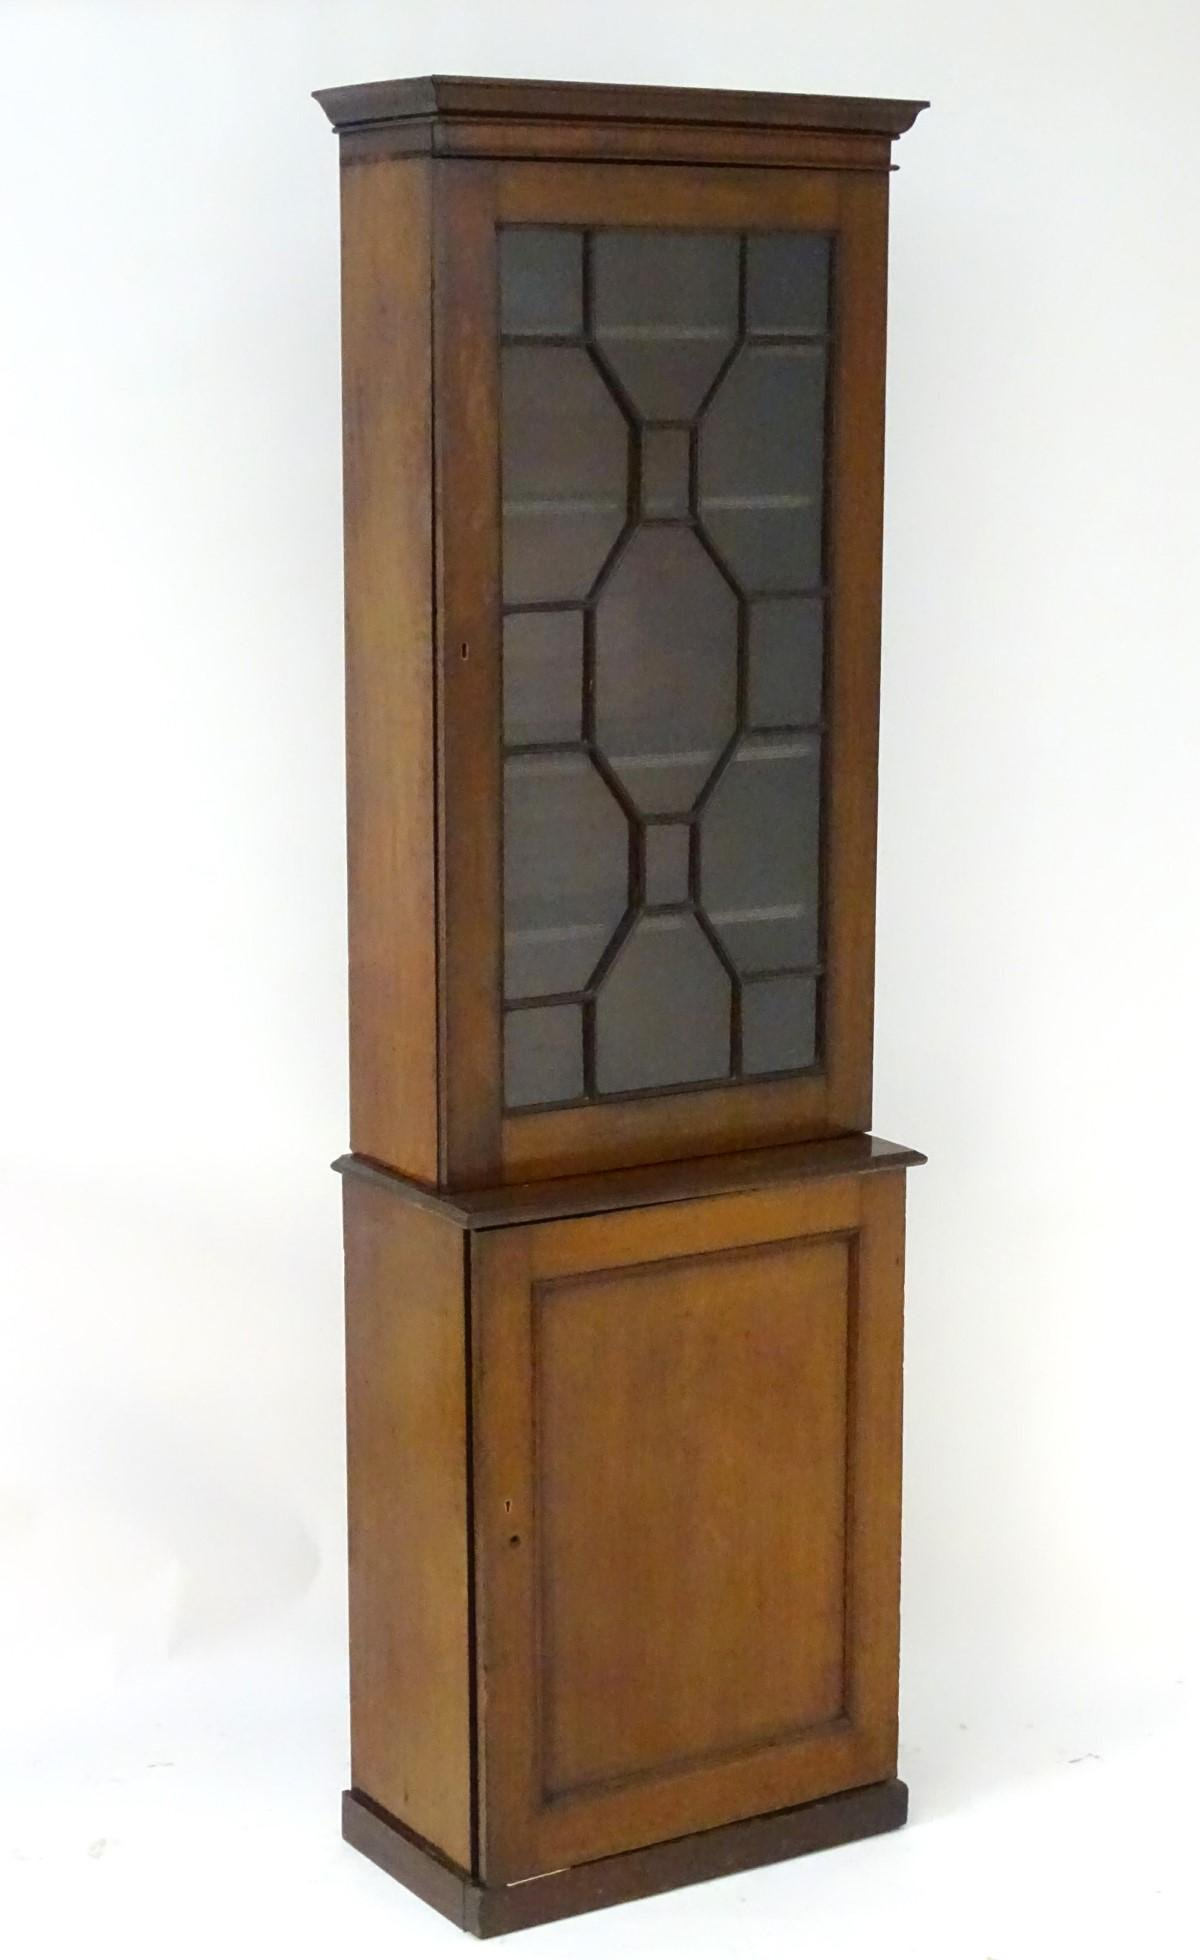 A late 19thC / early 20thC mahogany cabinet with a